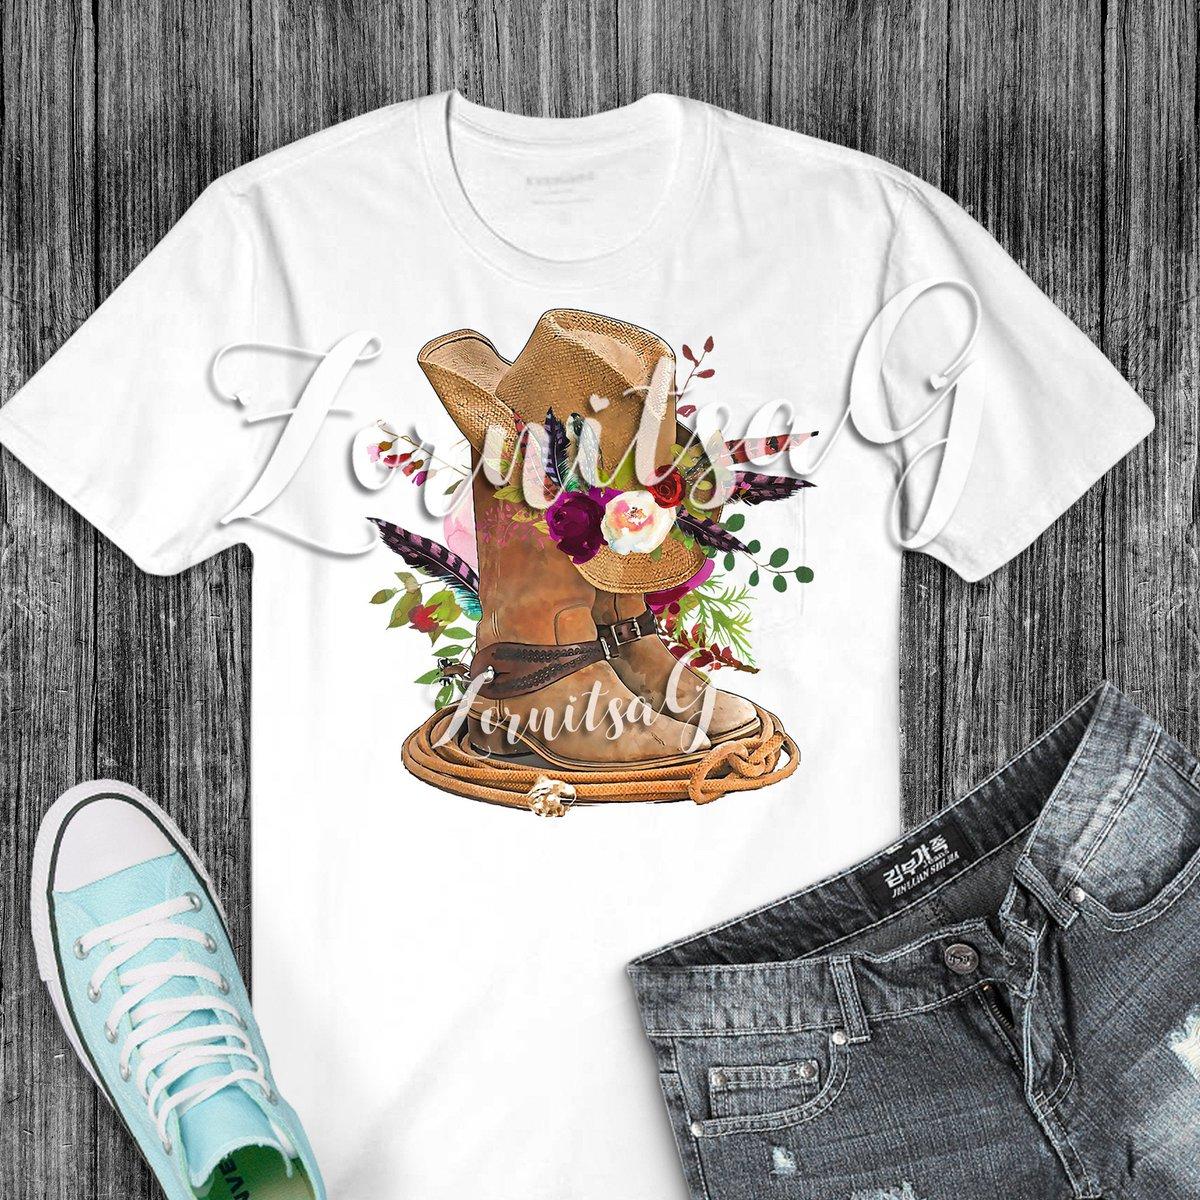 cowgirl boots png sublimation design download https://etsy.me/2XGnZsS #printable #cowgirlpng #watercolorboots #cowgirlclipart #sublimation #cowgirlsublimation #cowgirlboots #sublimationdownload #png #wildwest #countrygirl #sublimation #tshirtdesigns #clipart #rodeopic.twitter.com/HooxFGv4tE